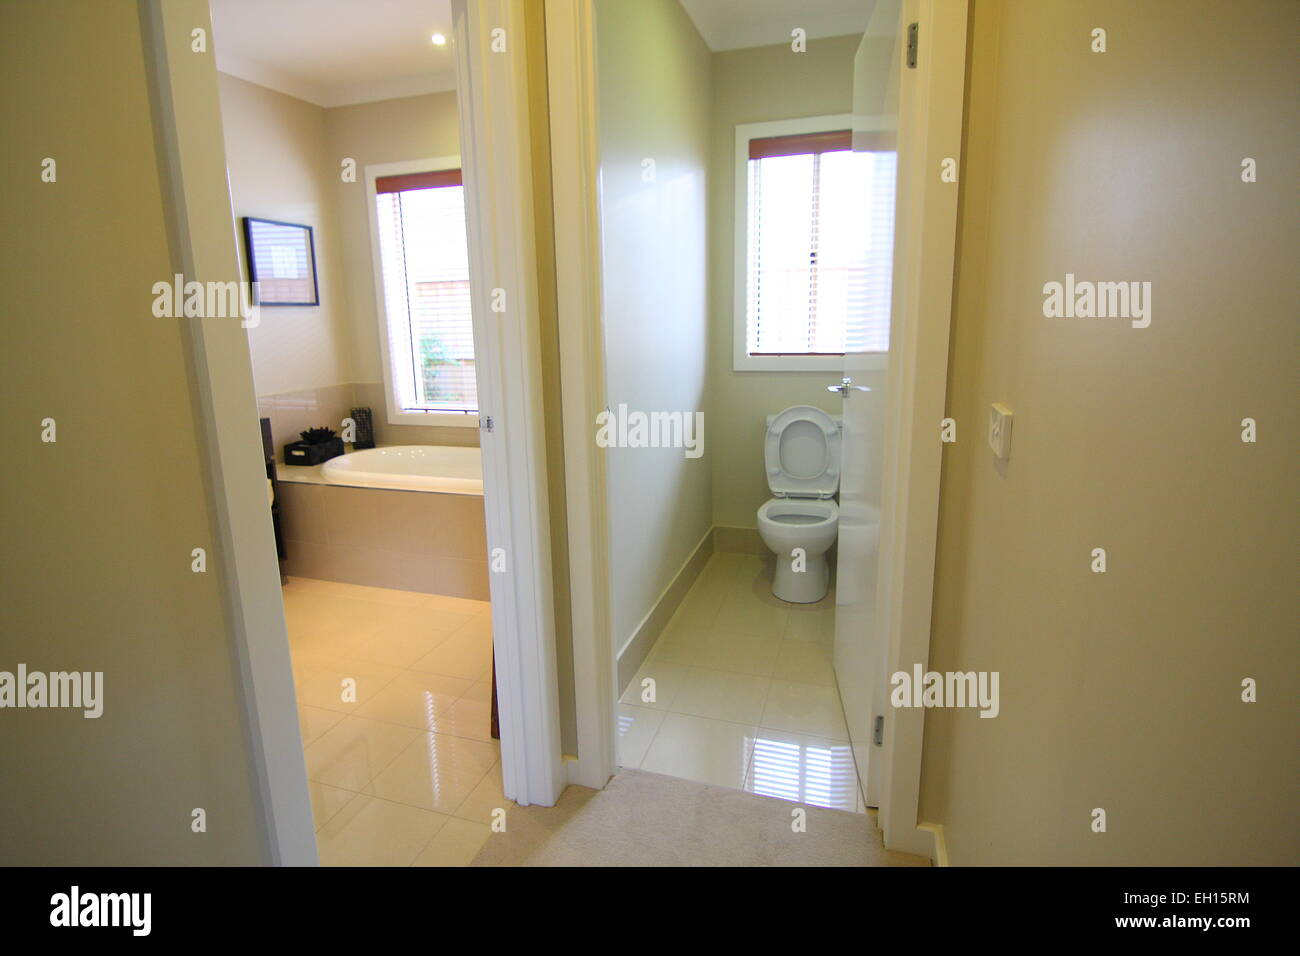 Modern Bathroom With Separate Toilet Stock Photo 79317160 Alamy